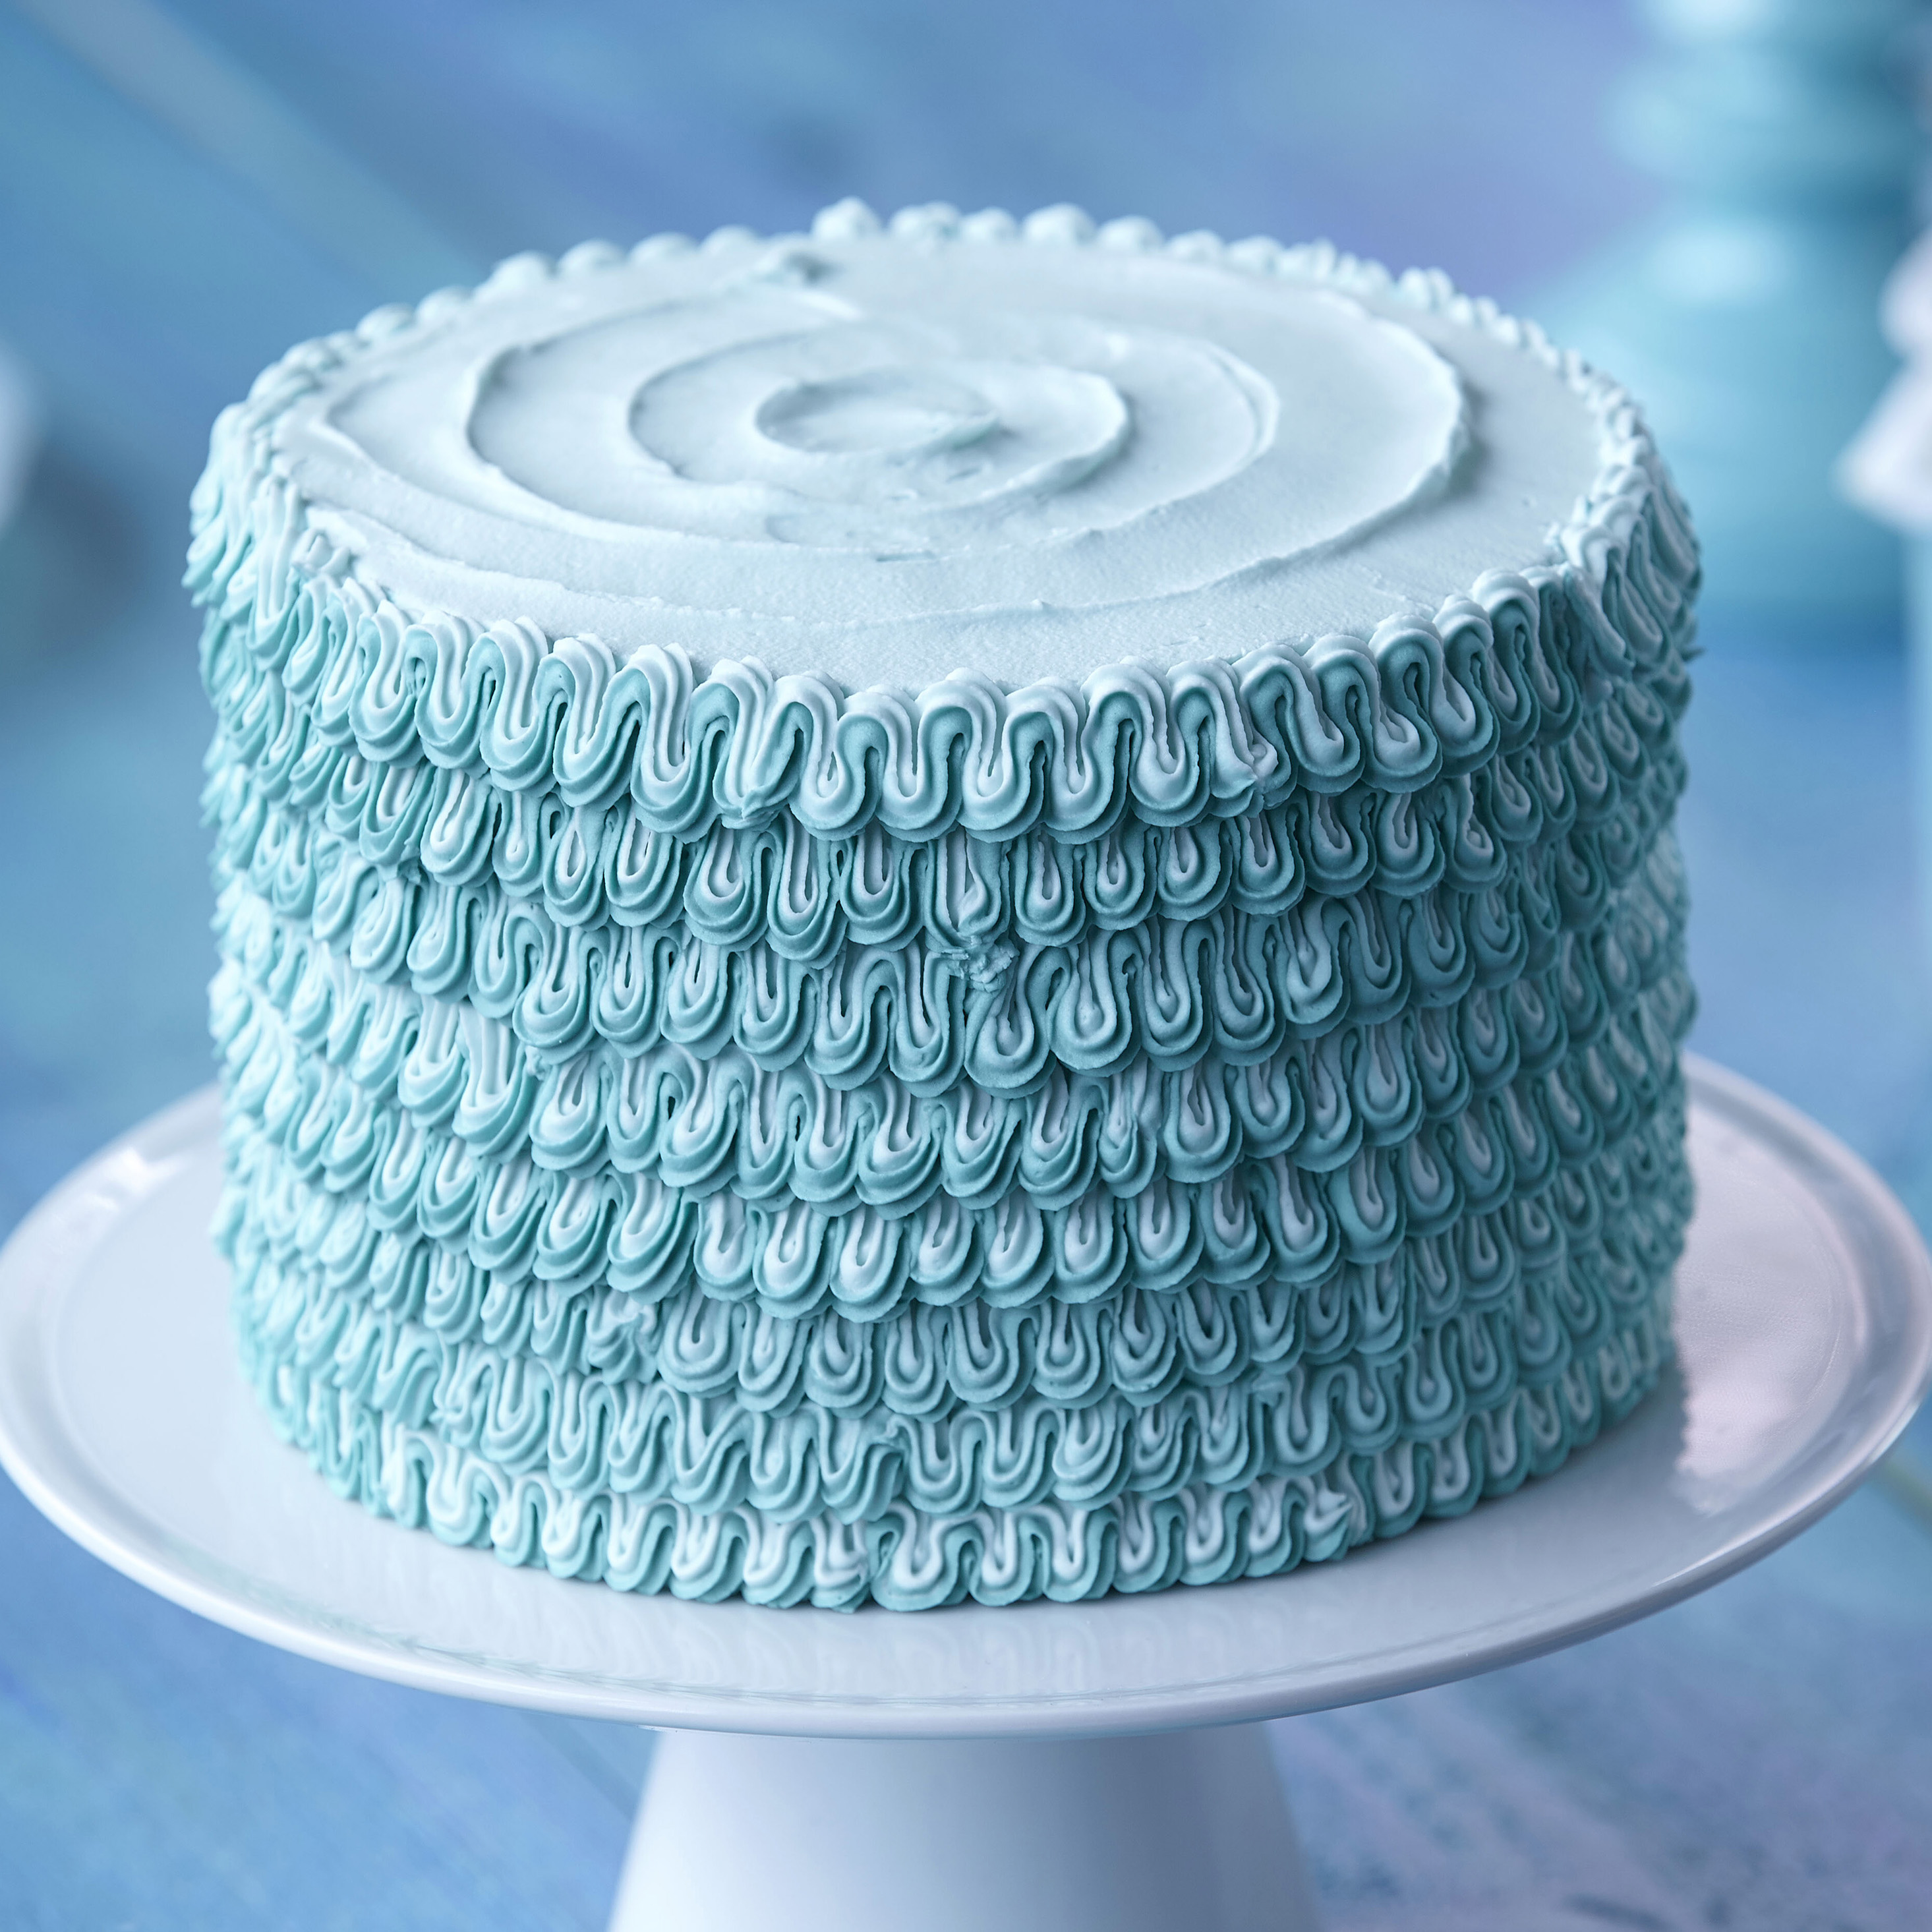 wilton wedding cake frosting recipes 10 cakes decorated with buttercream icing photo cake 27519